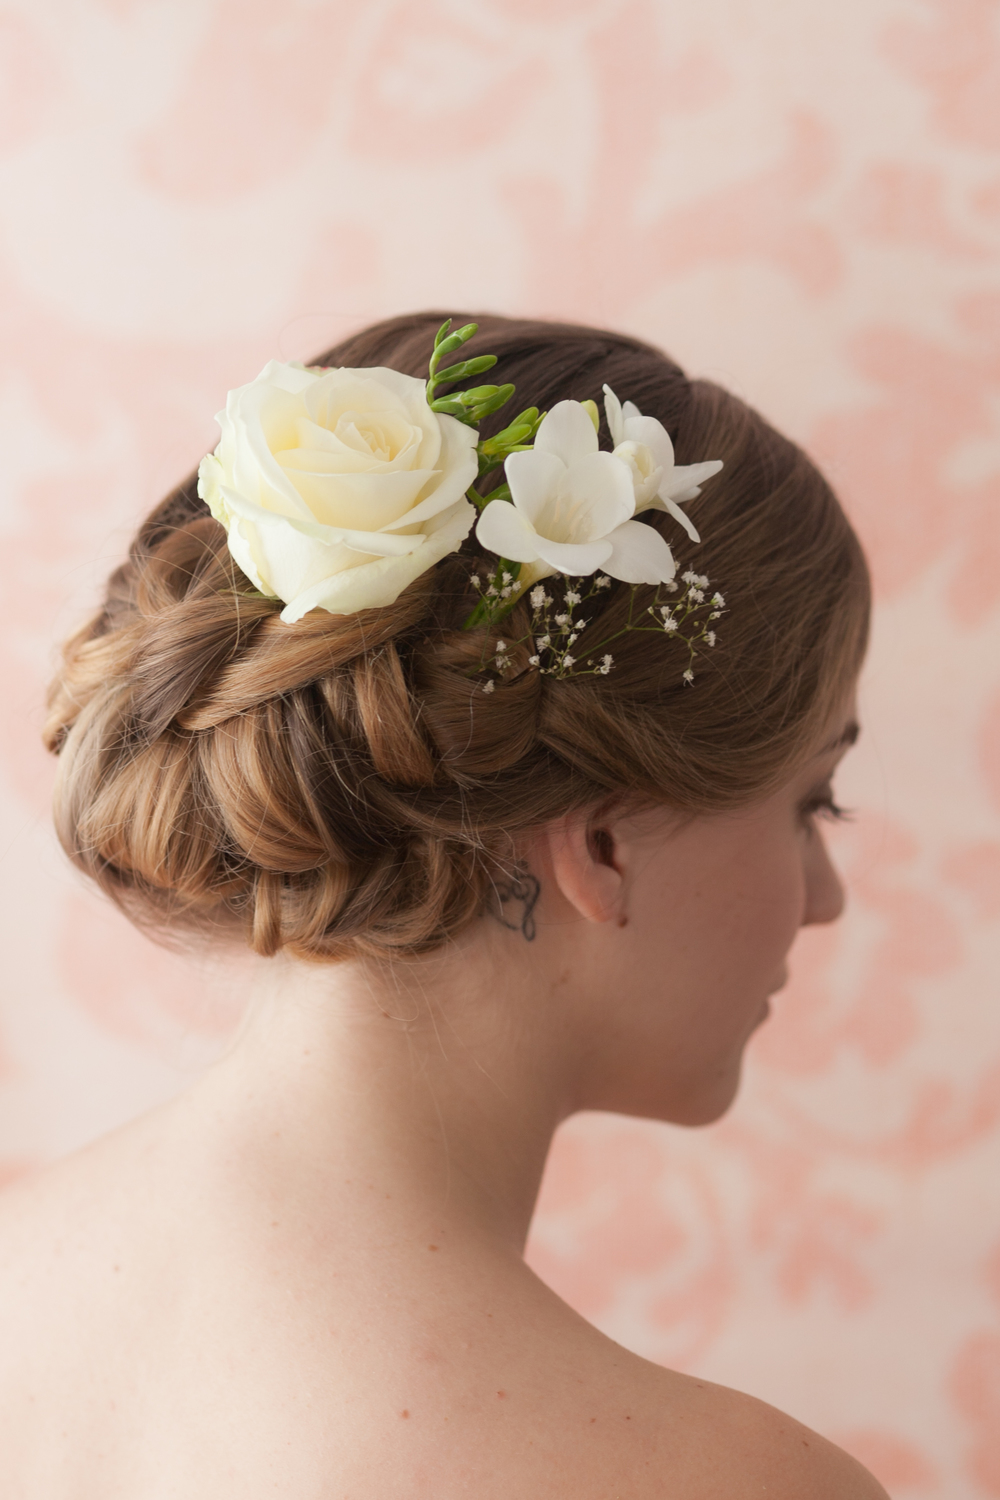 Boho hair up with fresh flowers